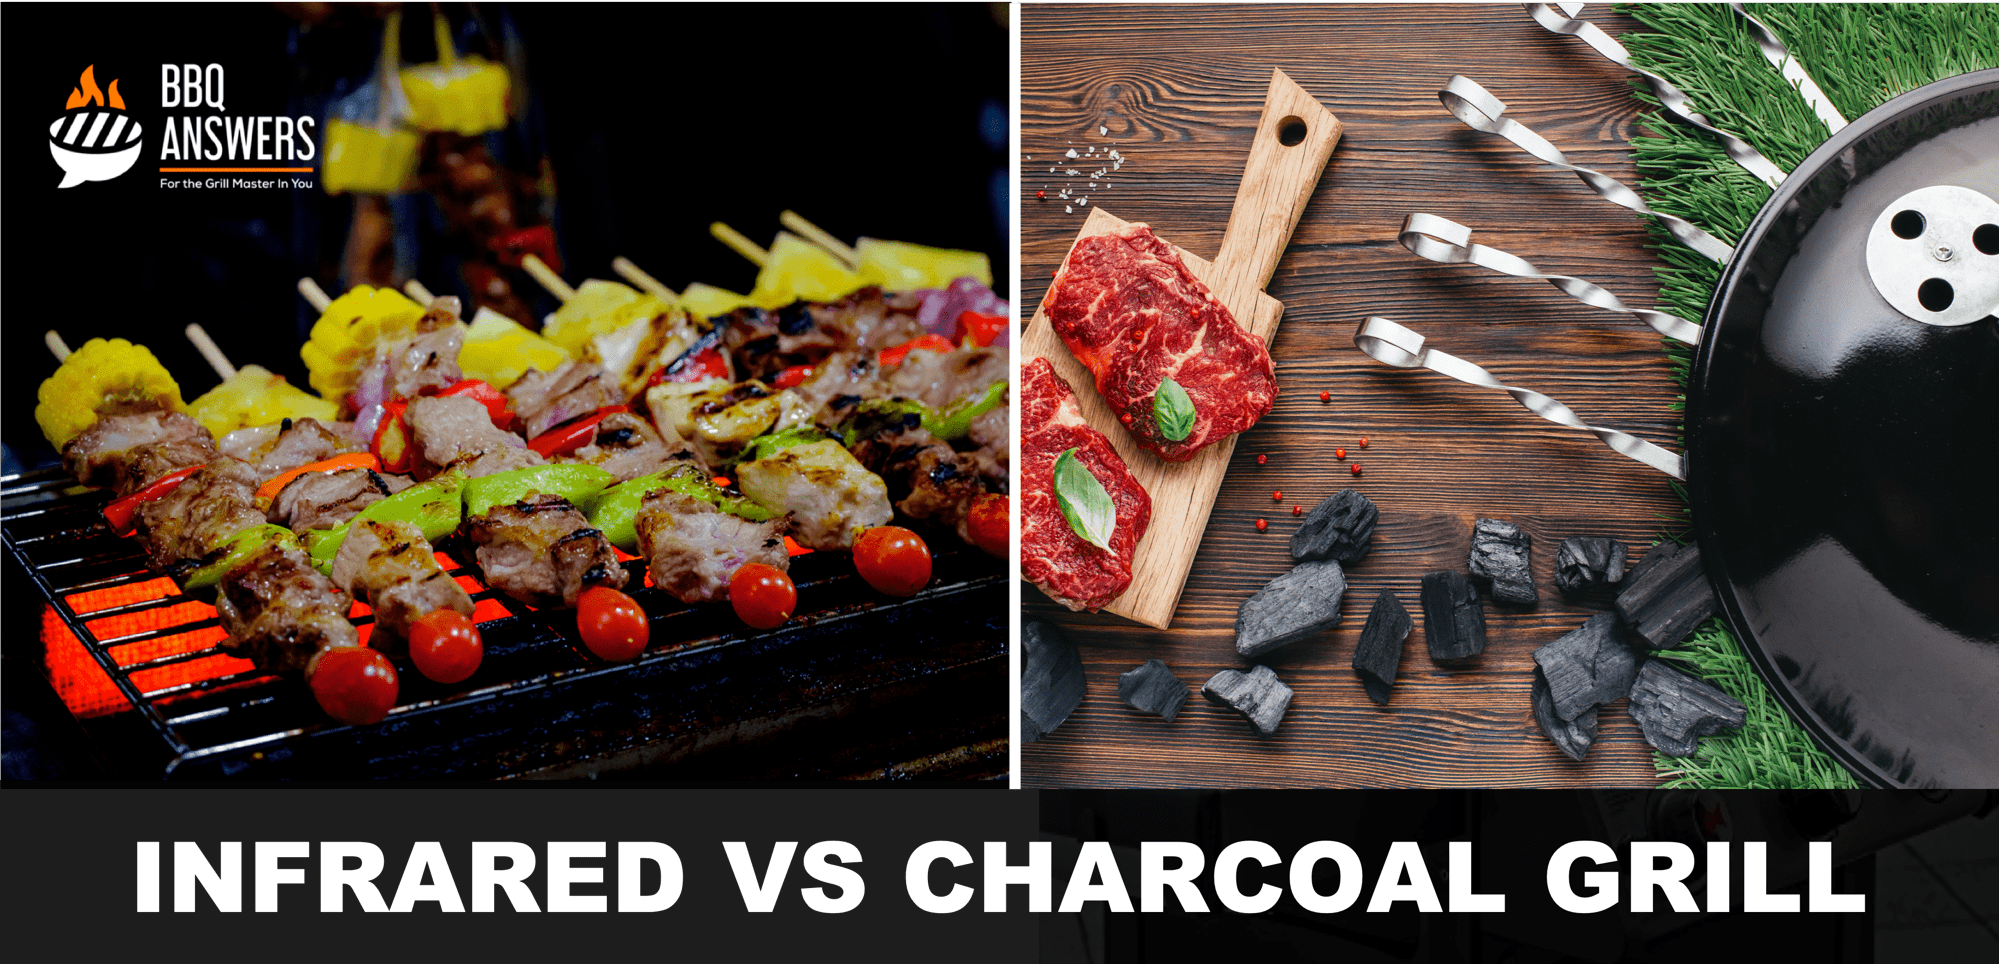 Infrared VS Charcoal Grill | BBQanswers